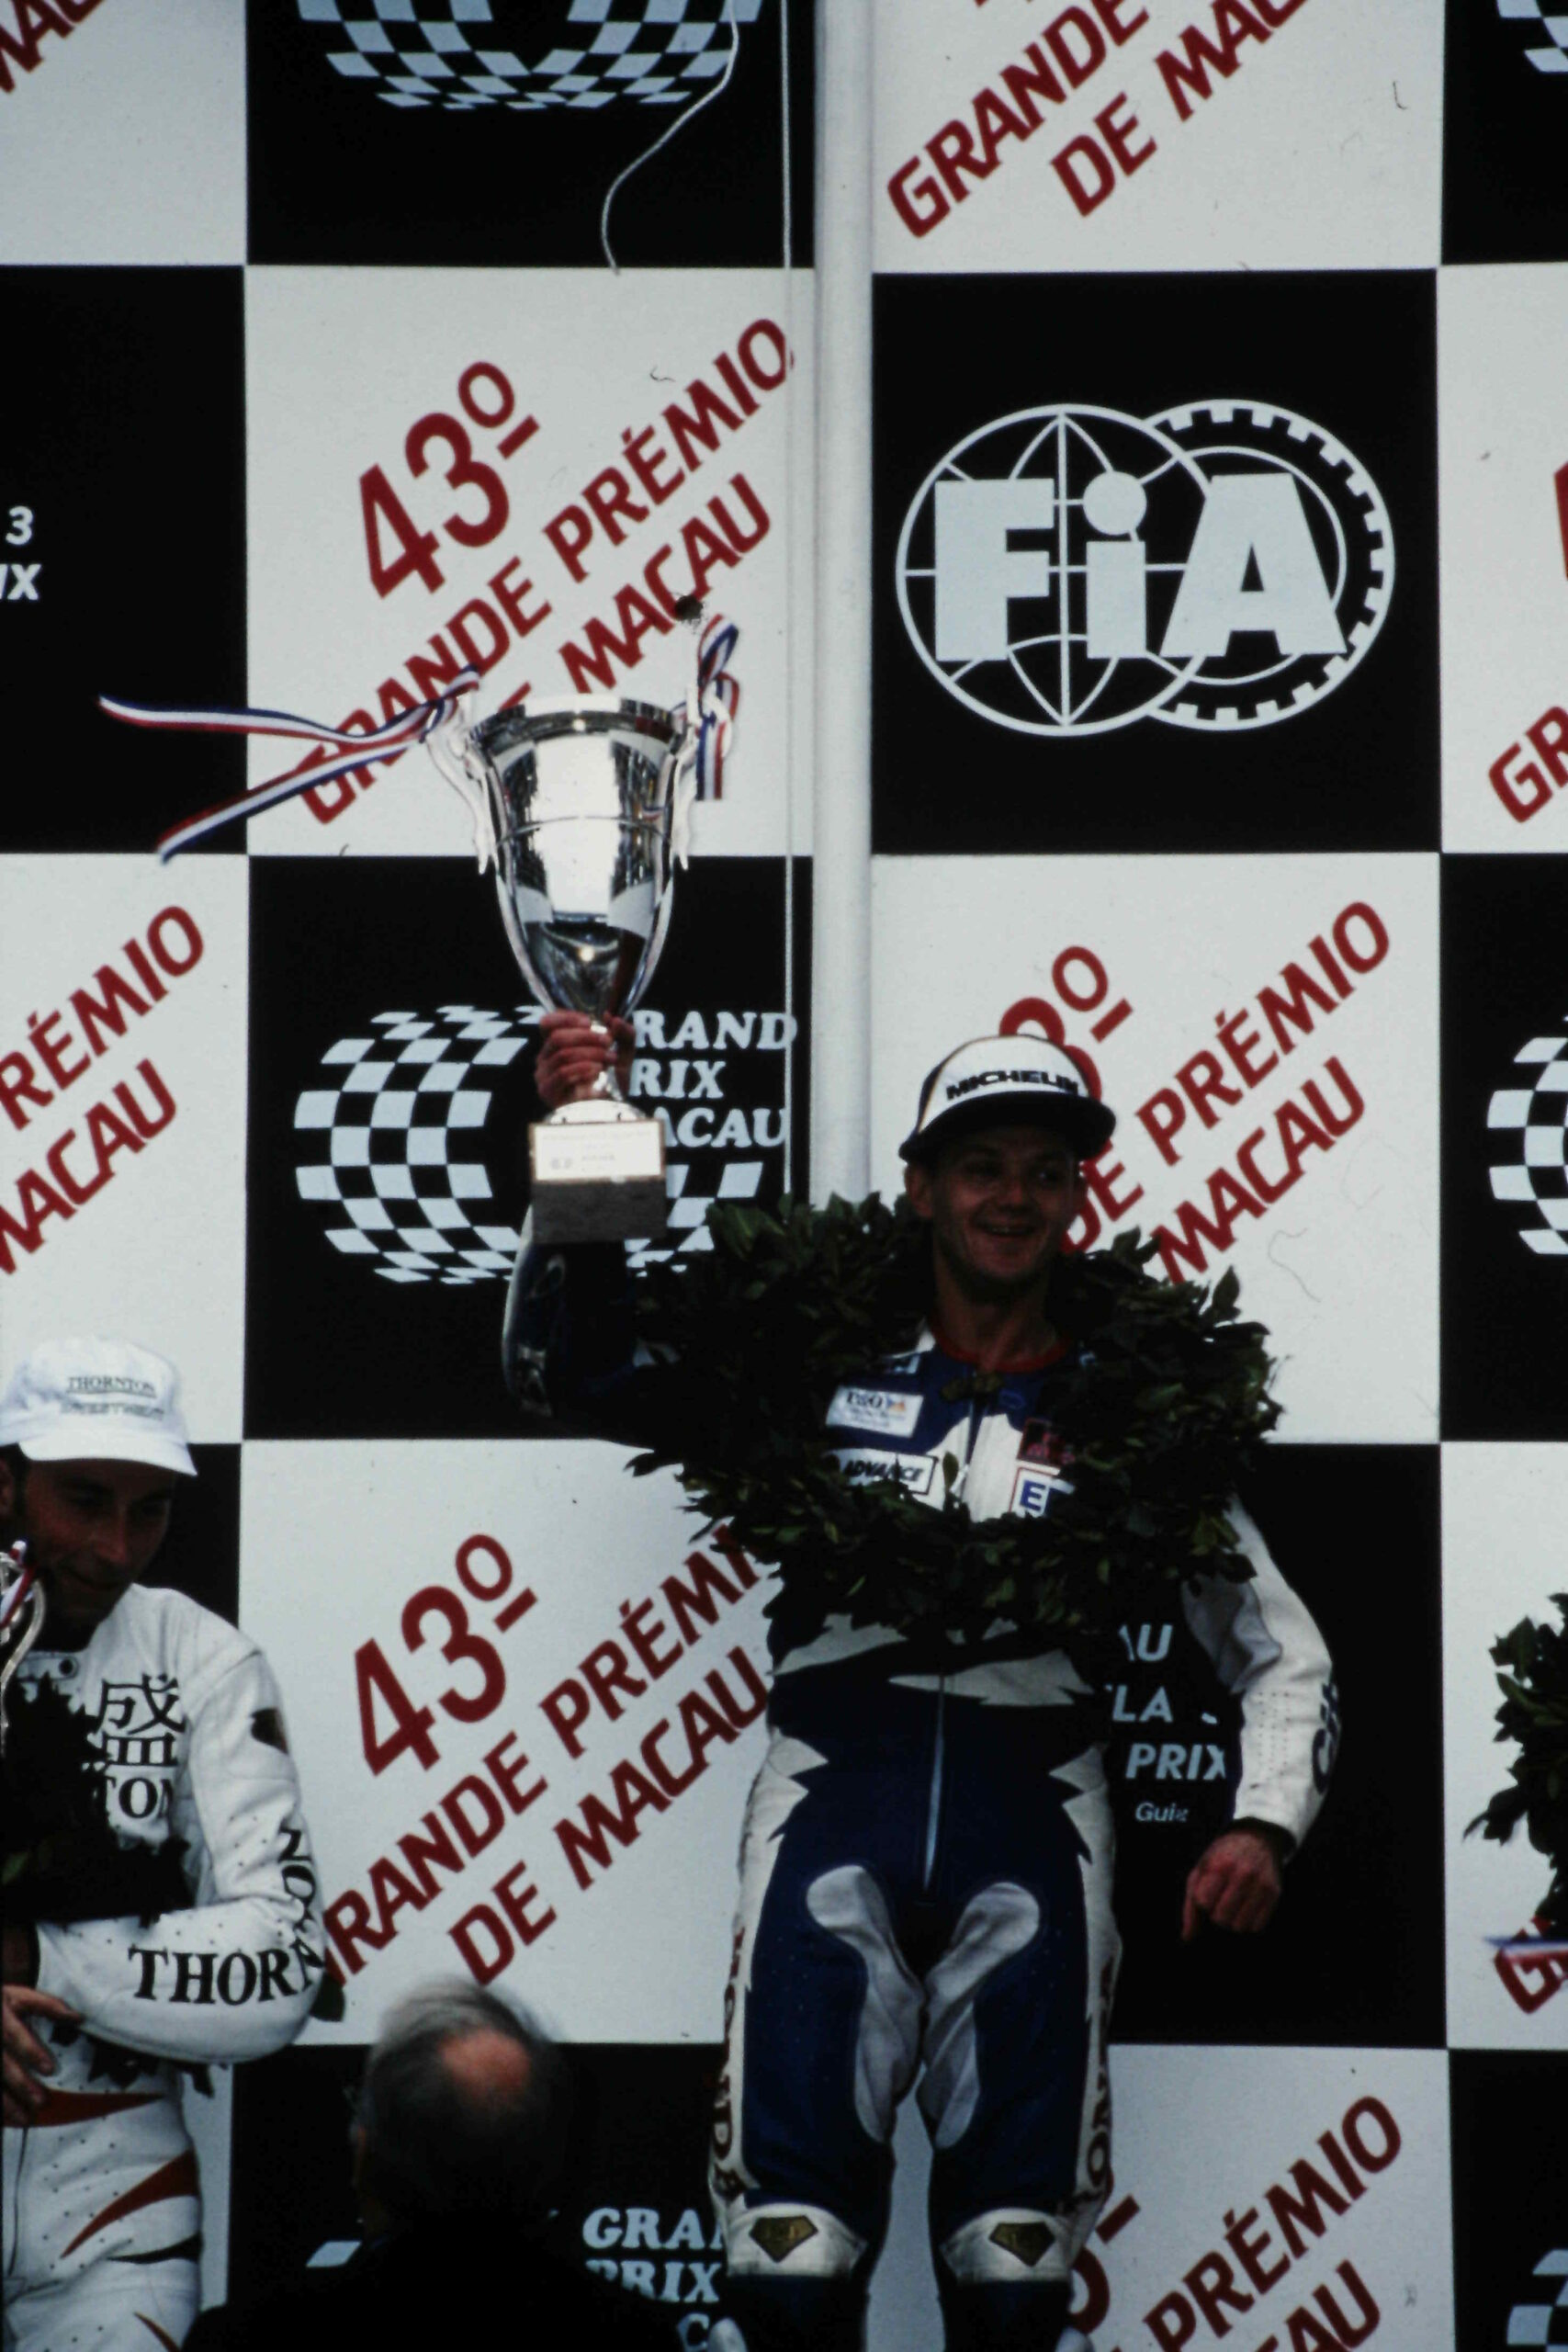 Past Champions To Add Historical Element To This Years Macau GP